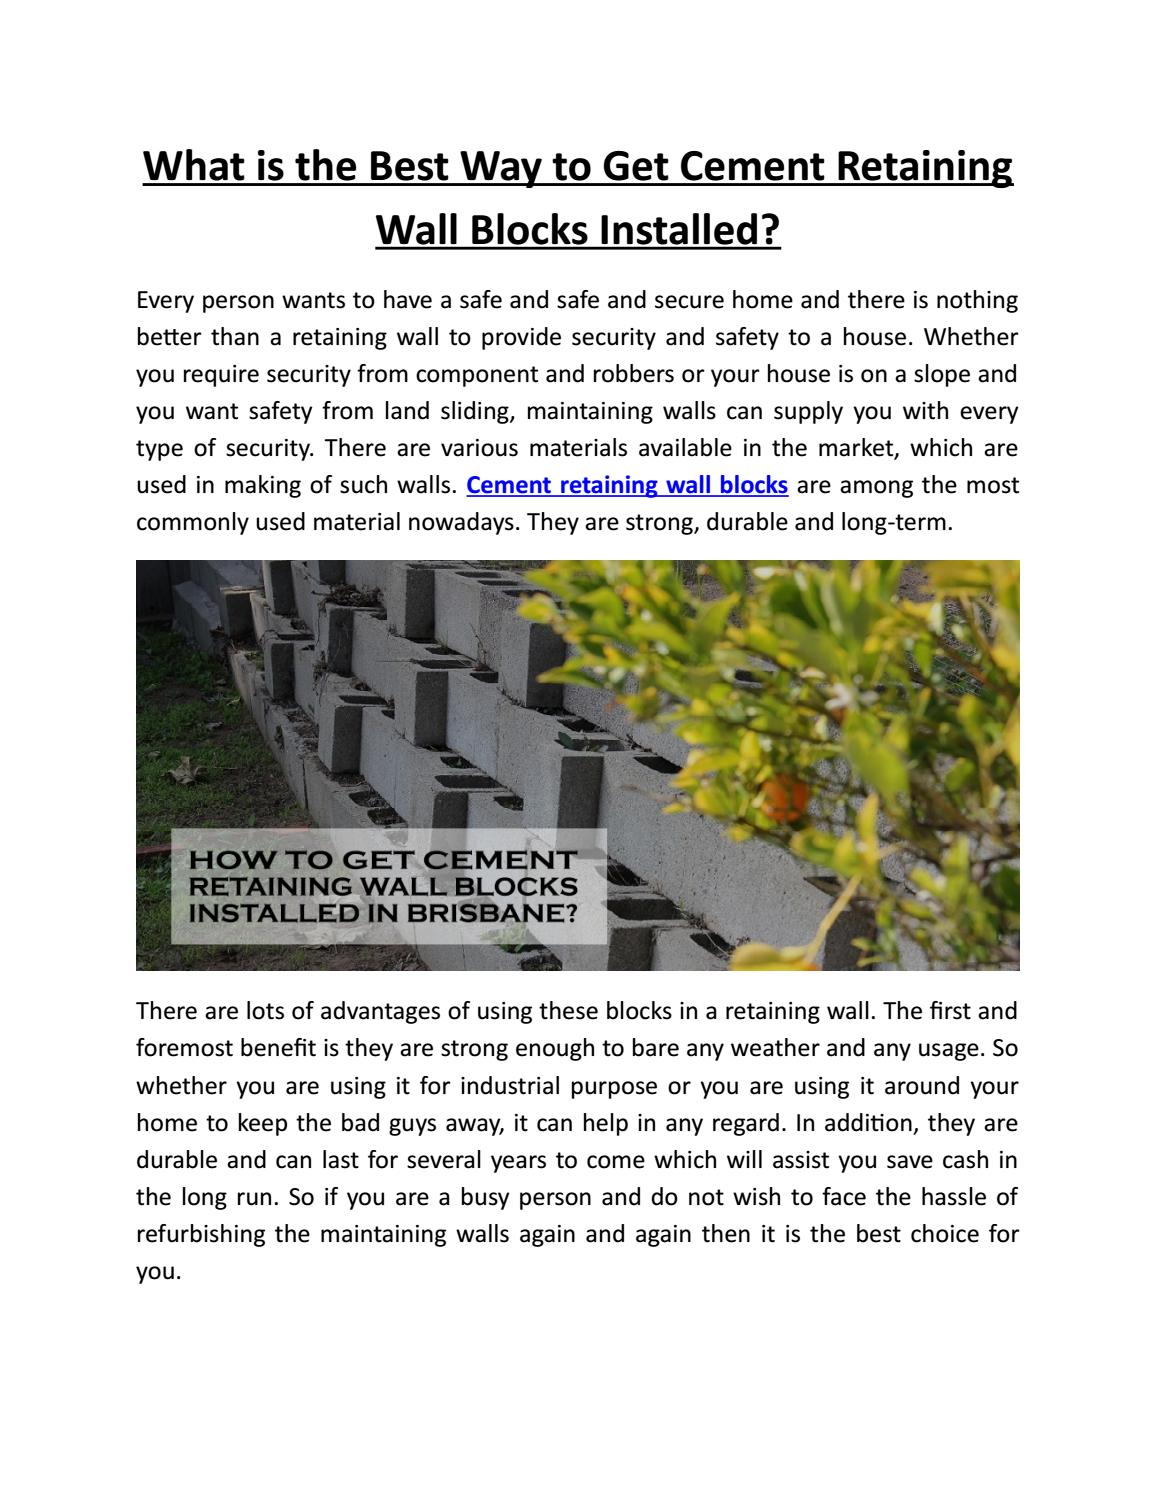 What Is The Best Way To Get Cement Retaining Wall Blocks Installed